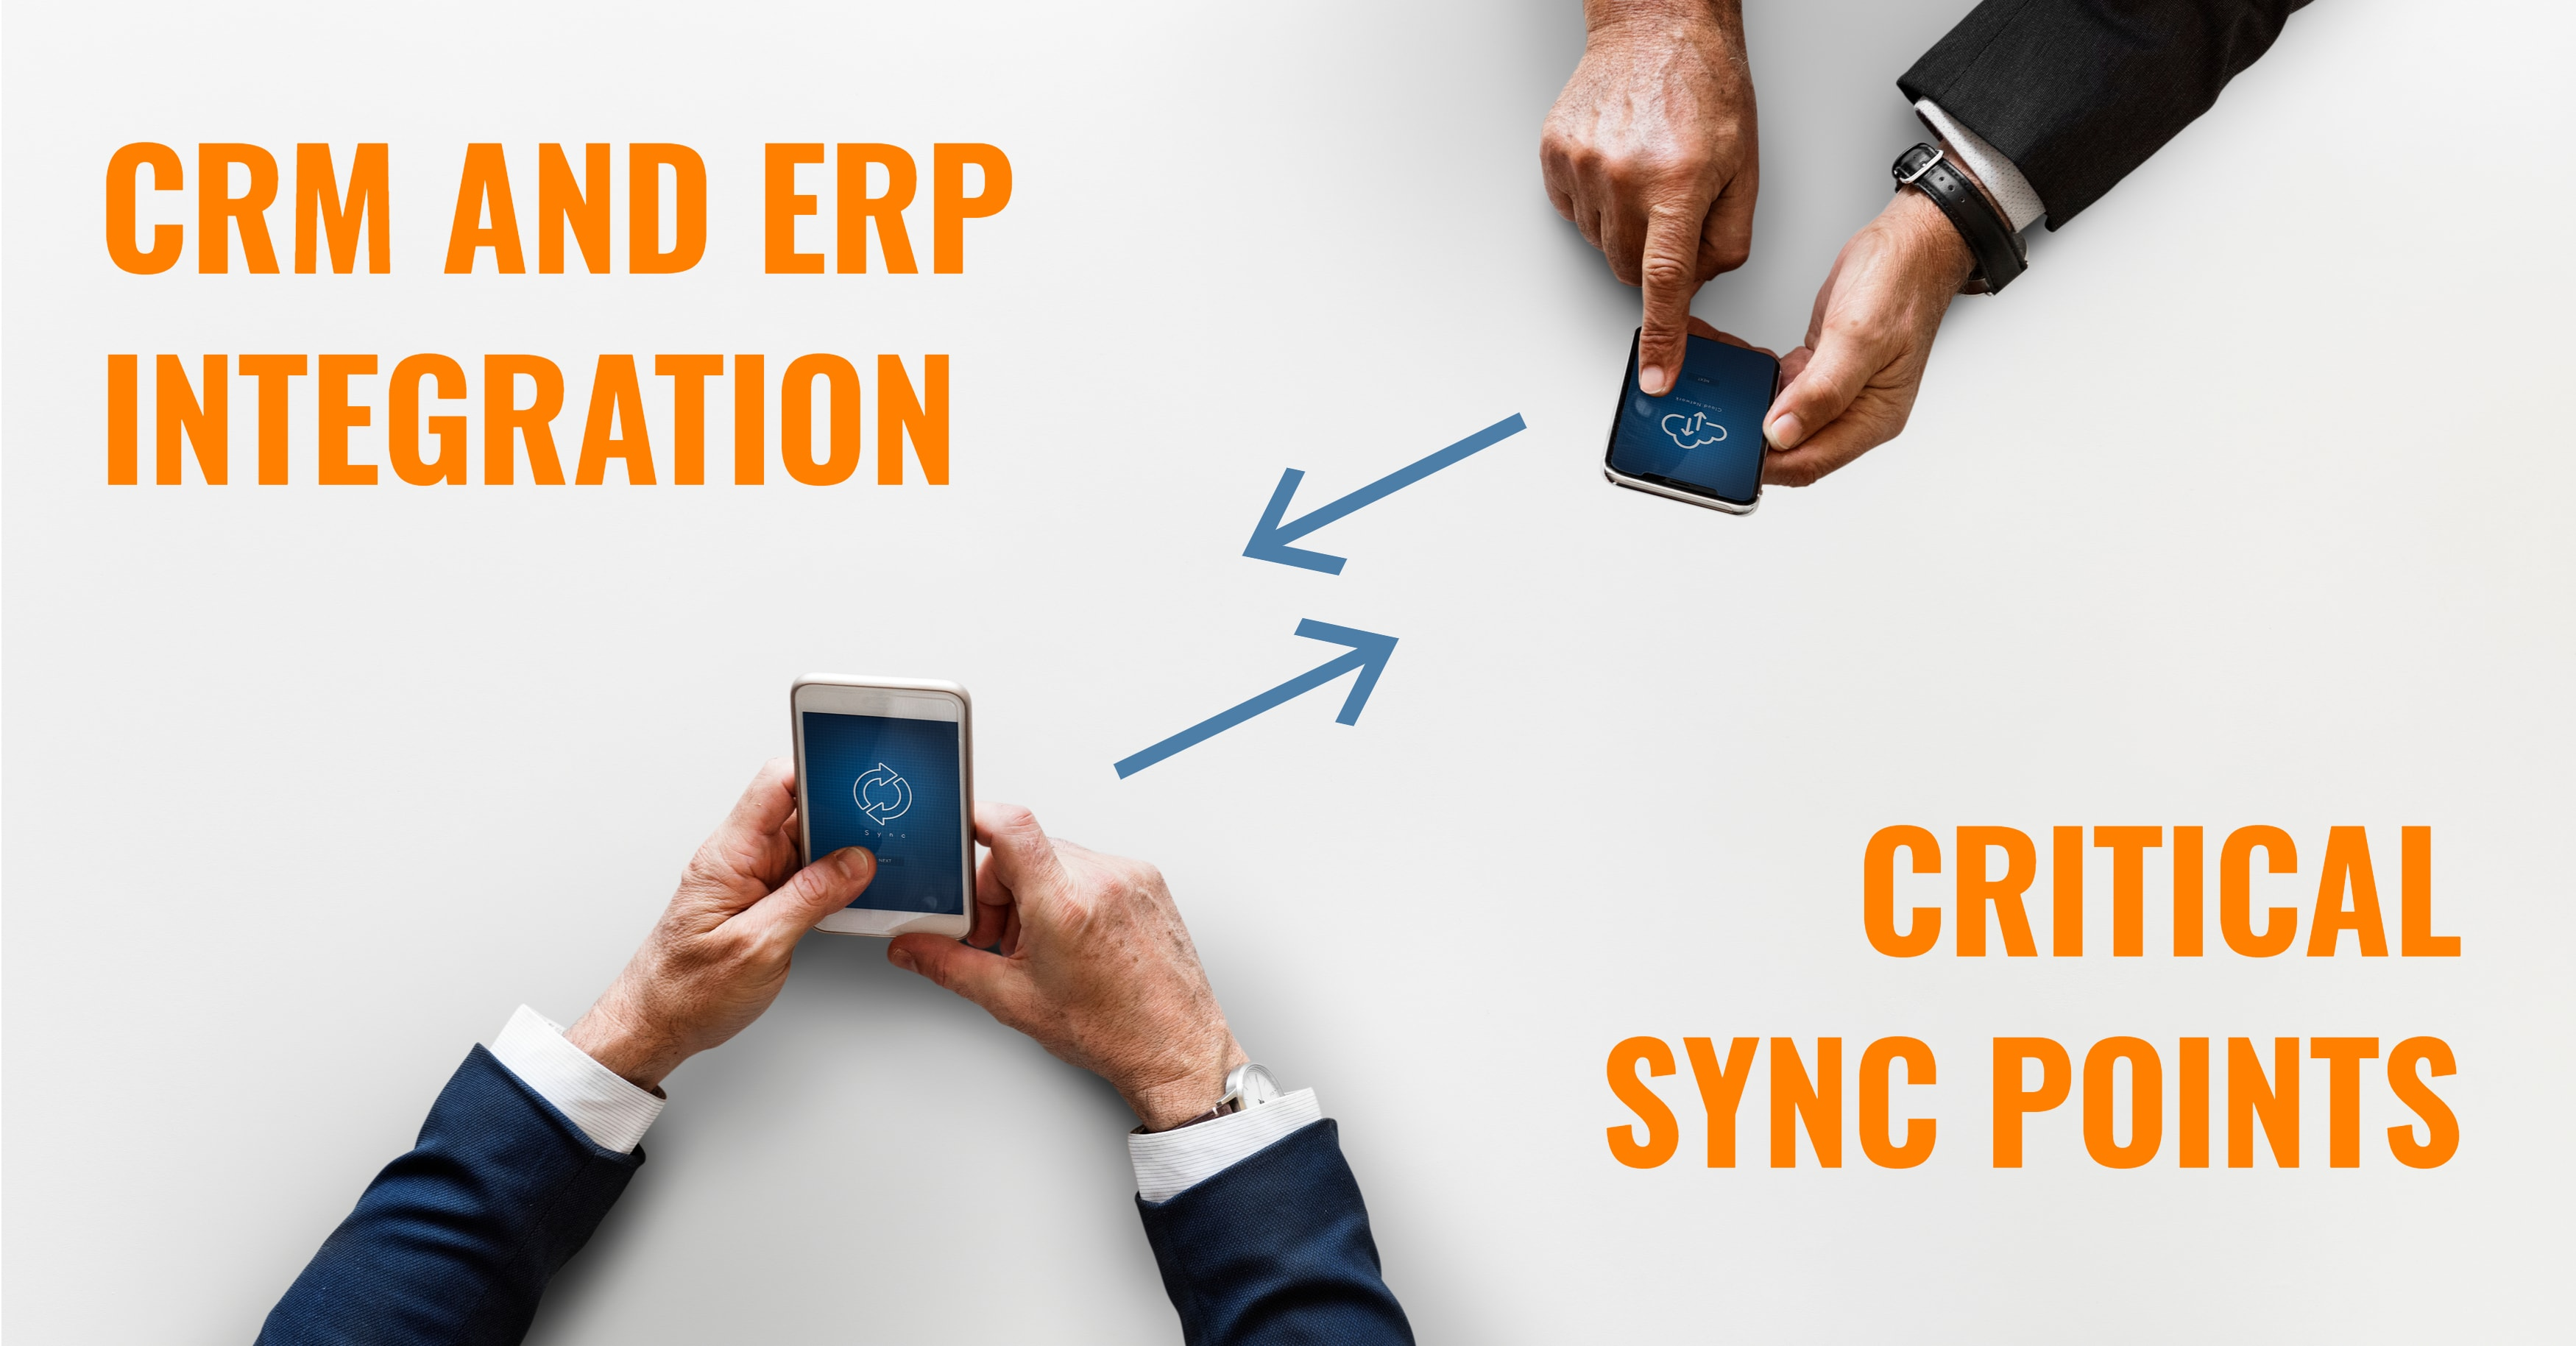 CRM and ERP Integration: Critical Sync Points